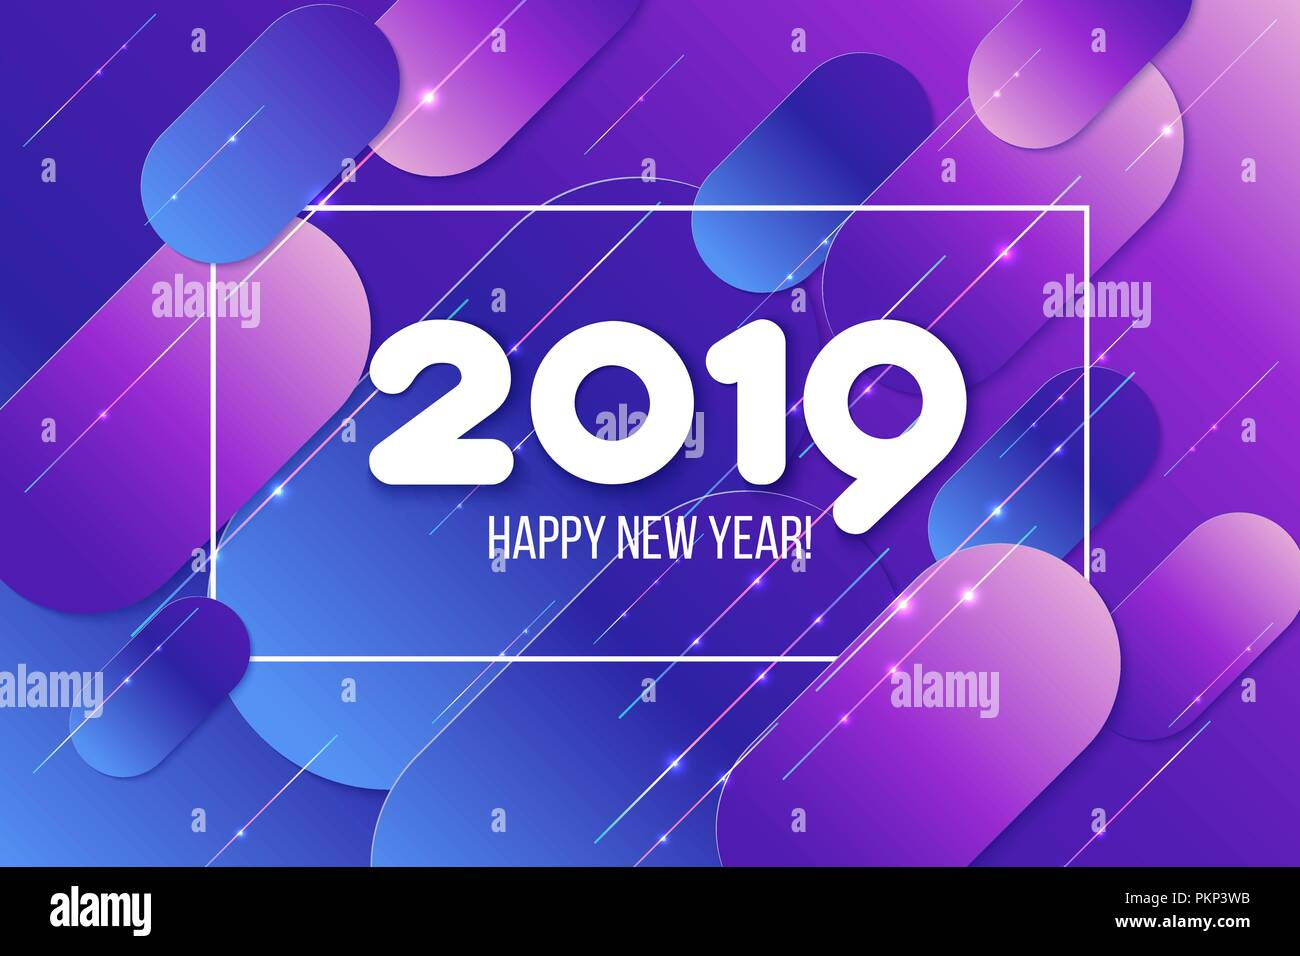 new year 2019 card gradient purple shapes composition abdstract background vector illustration